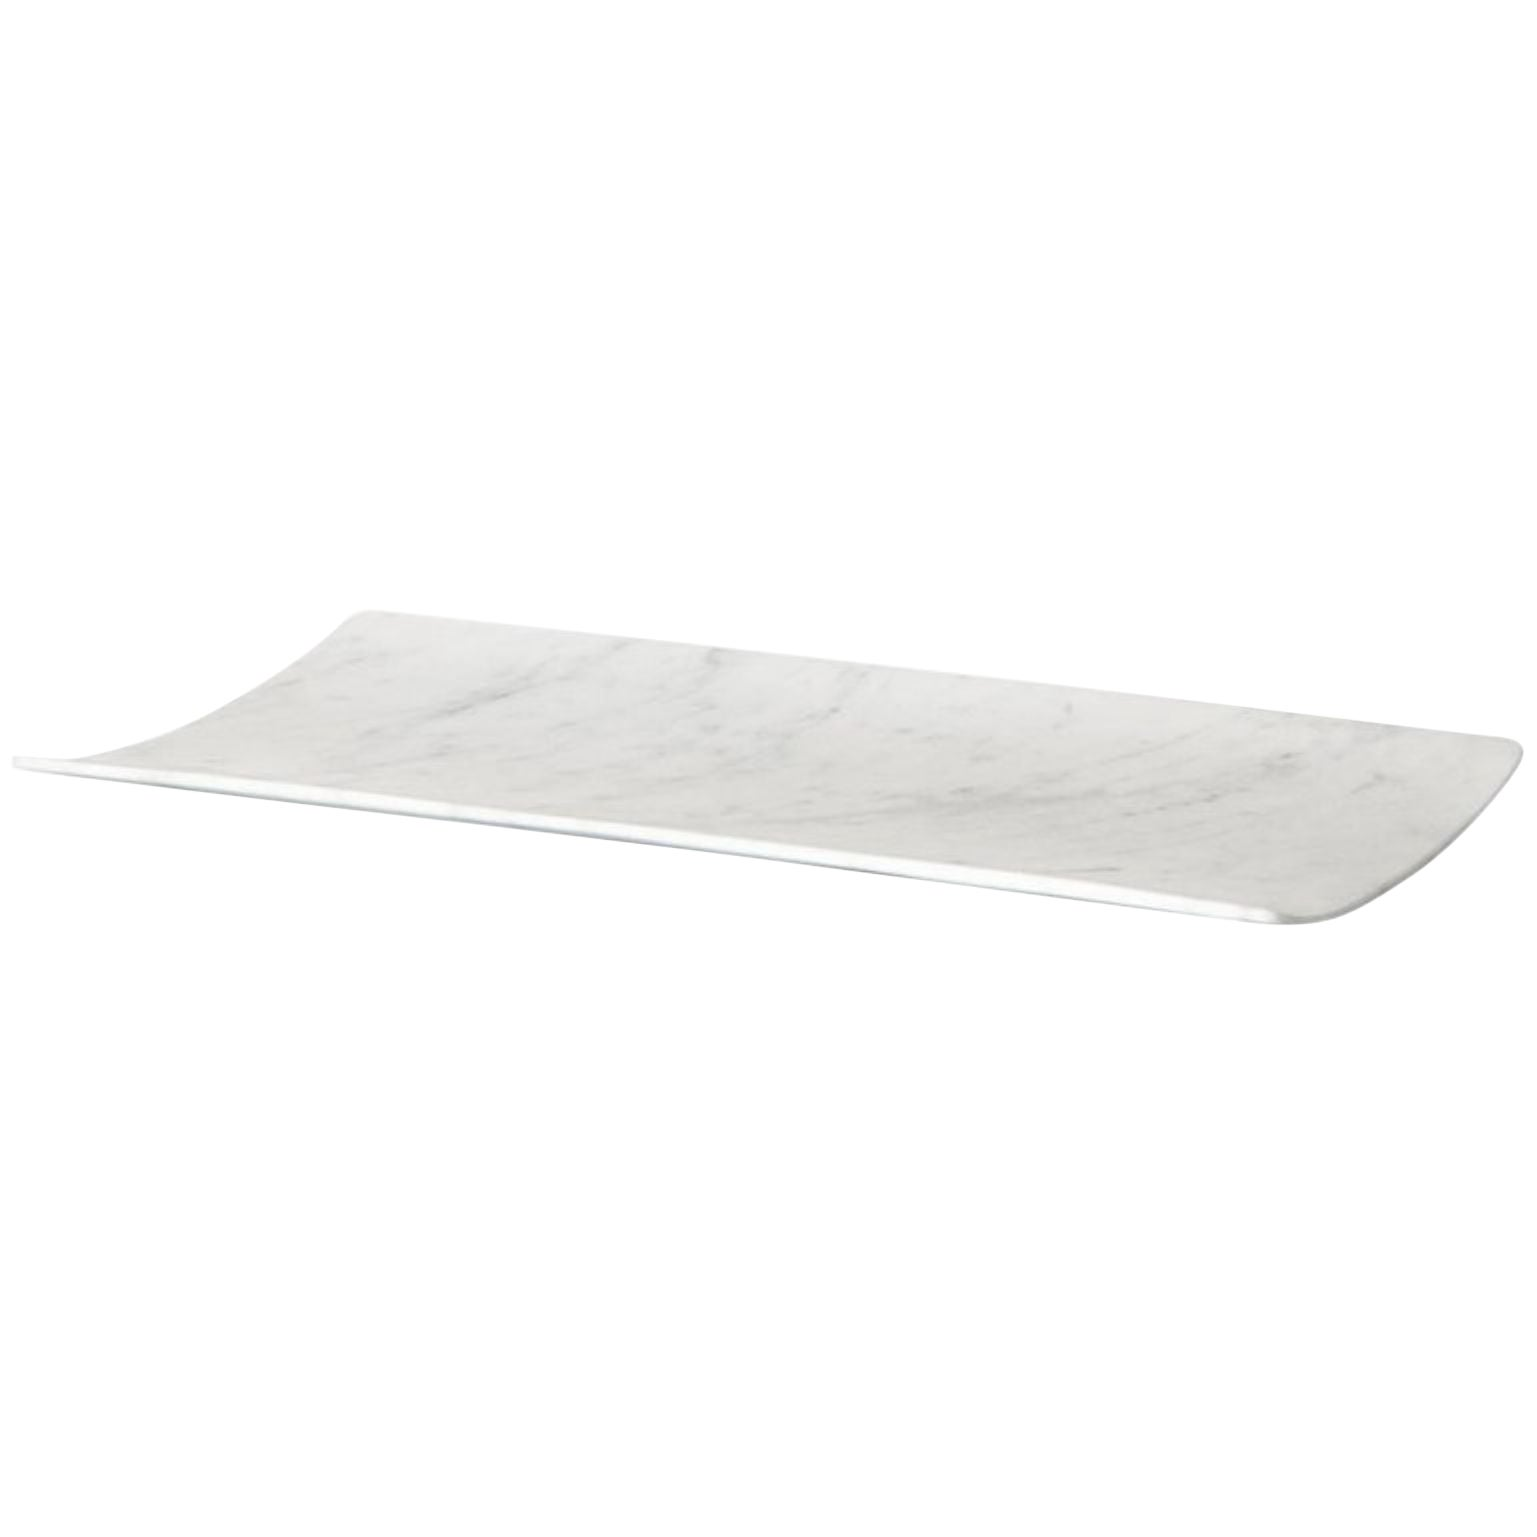 Curvati Large Tray by Studioformart